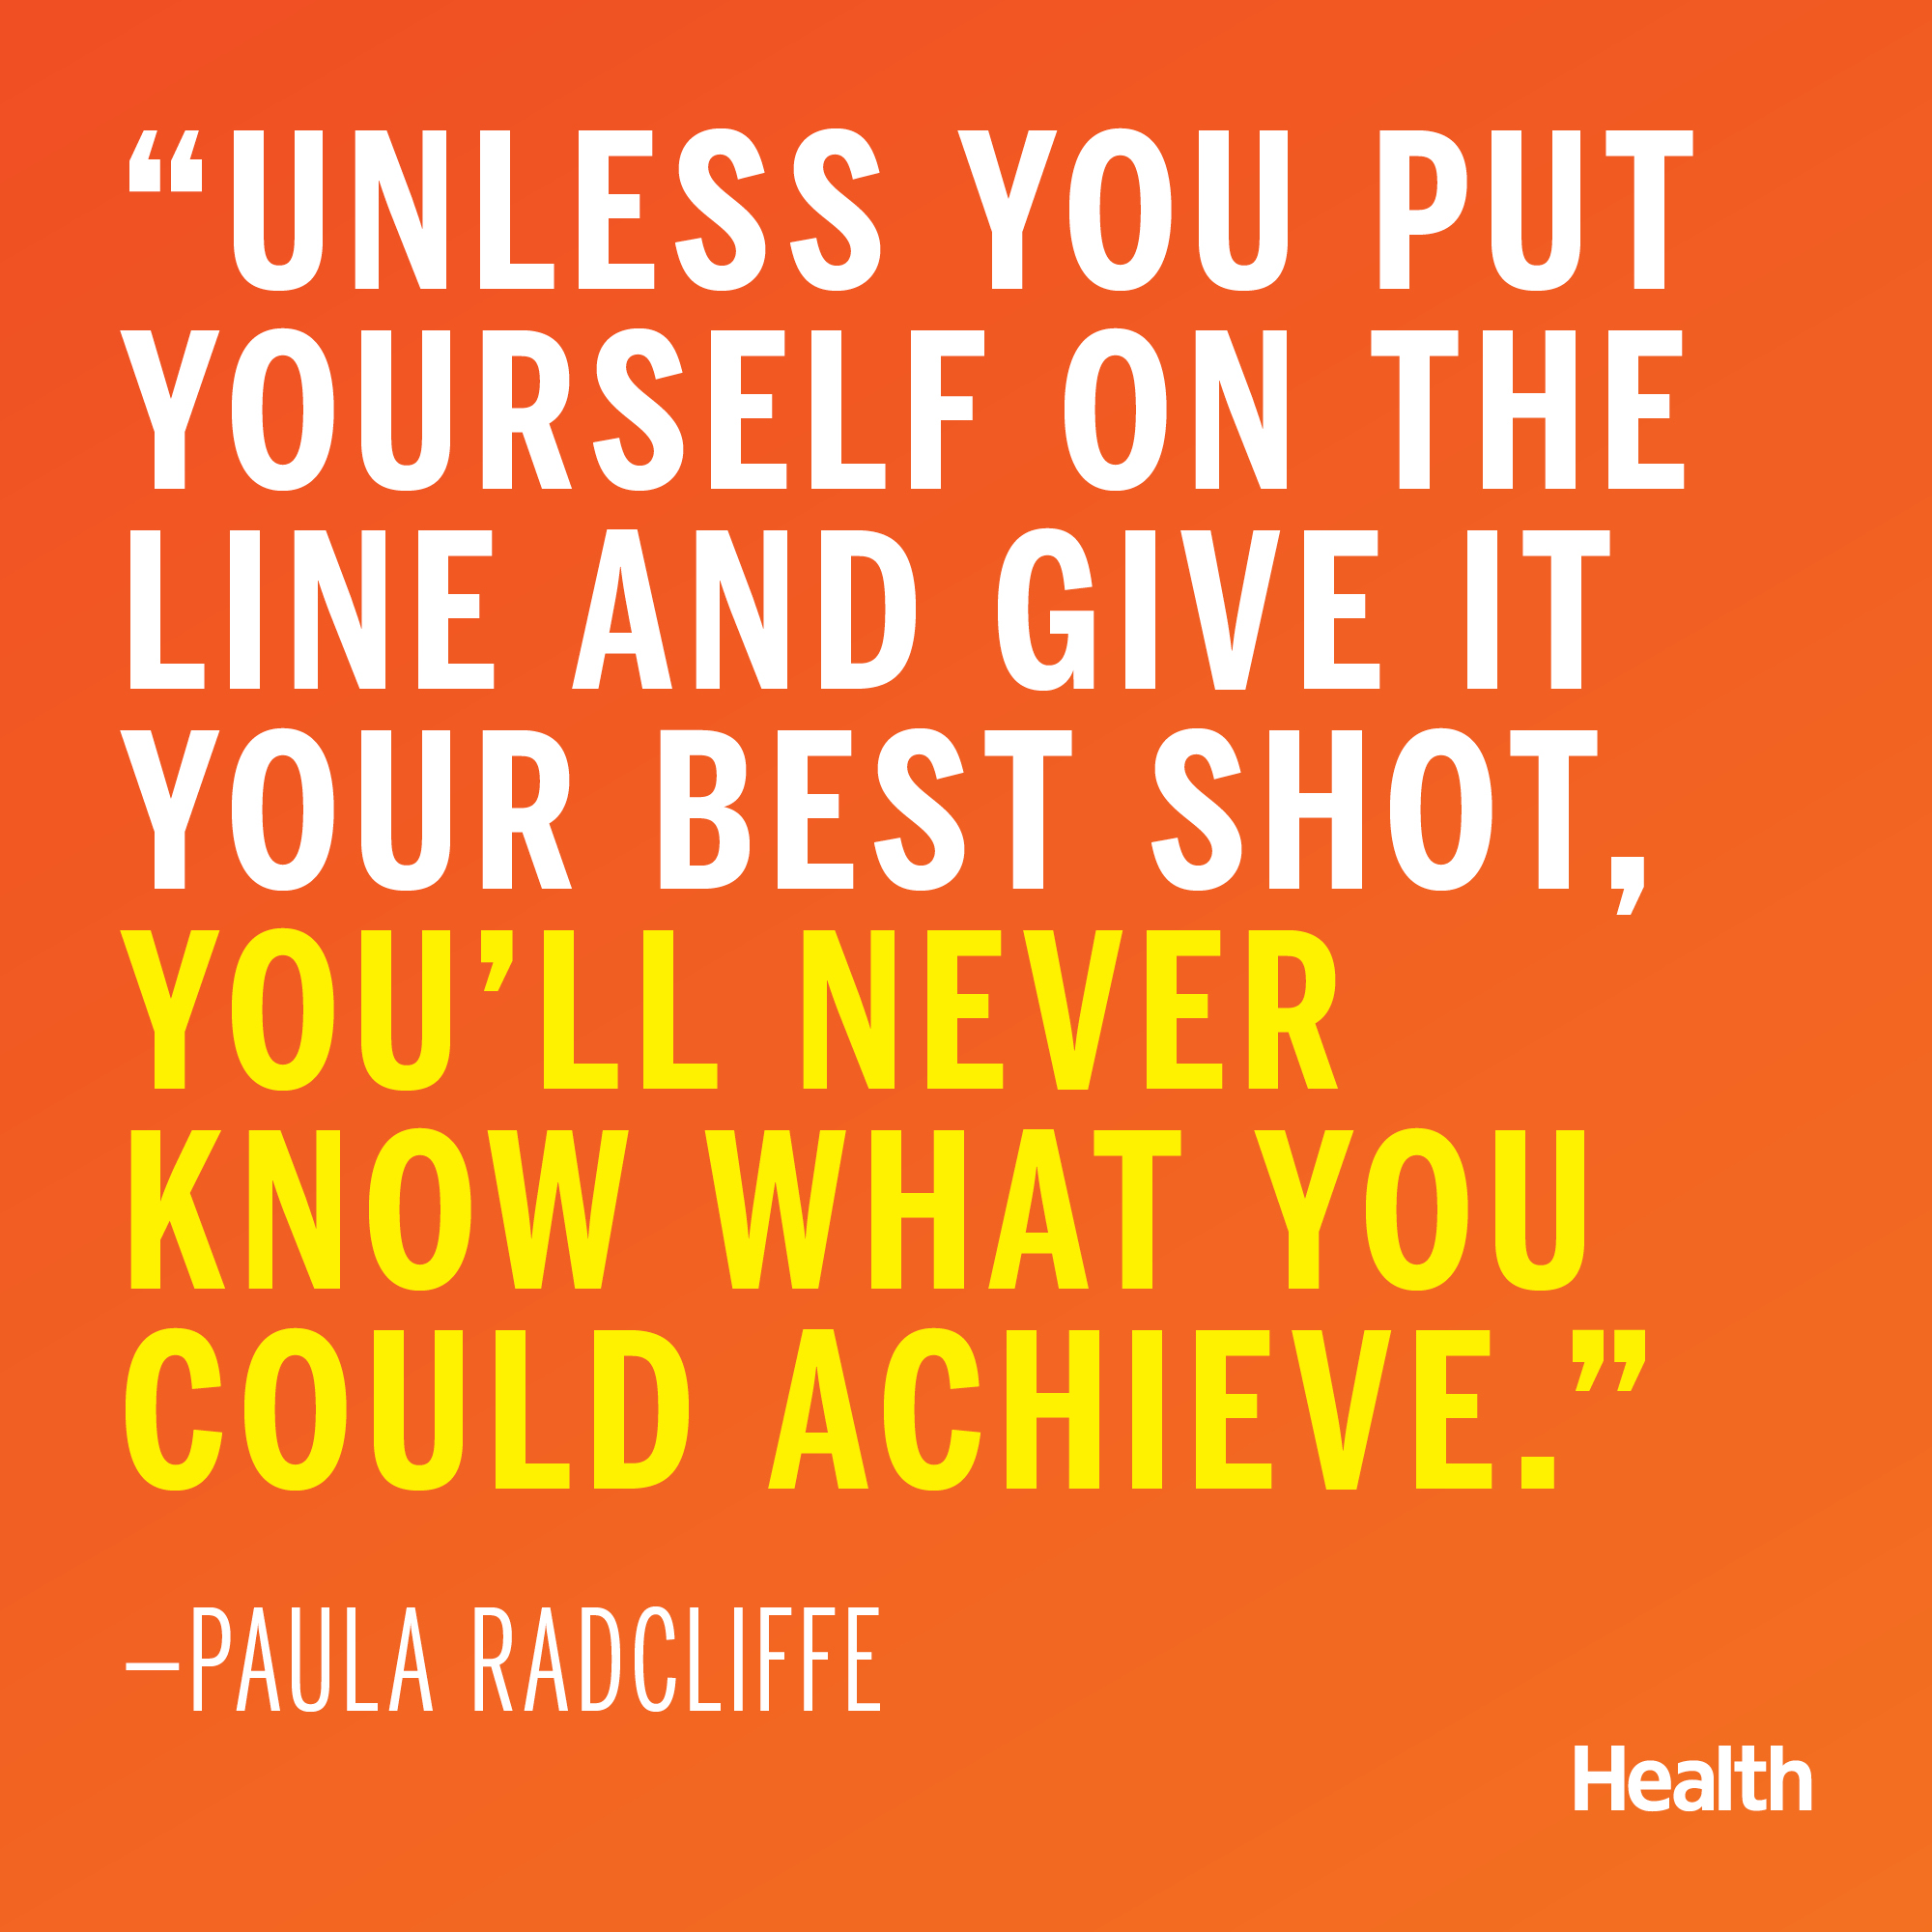 paula-radcliffe-inspirational-quote